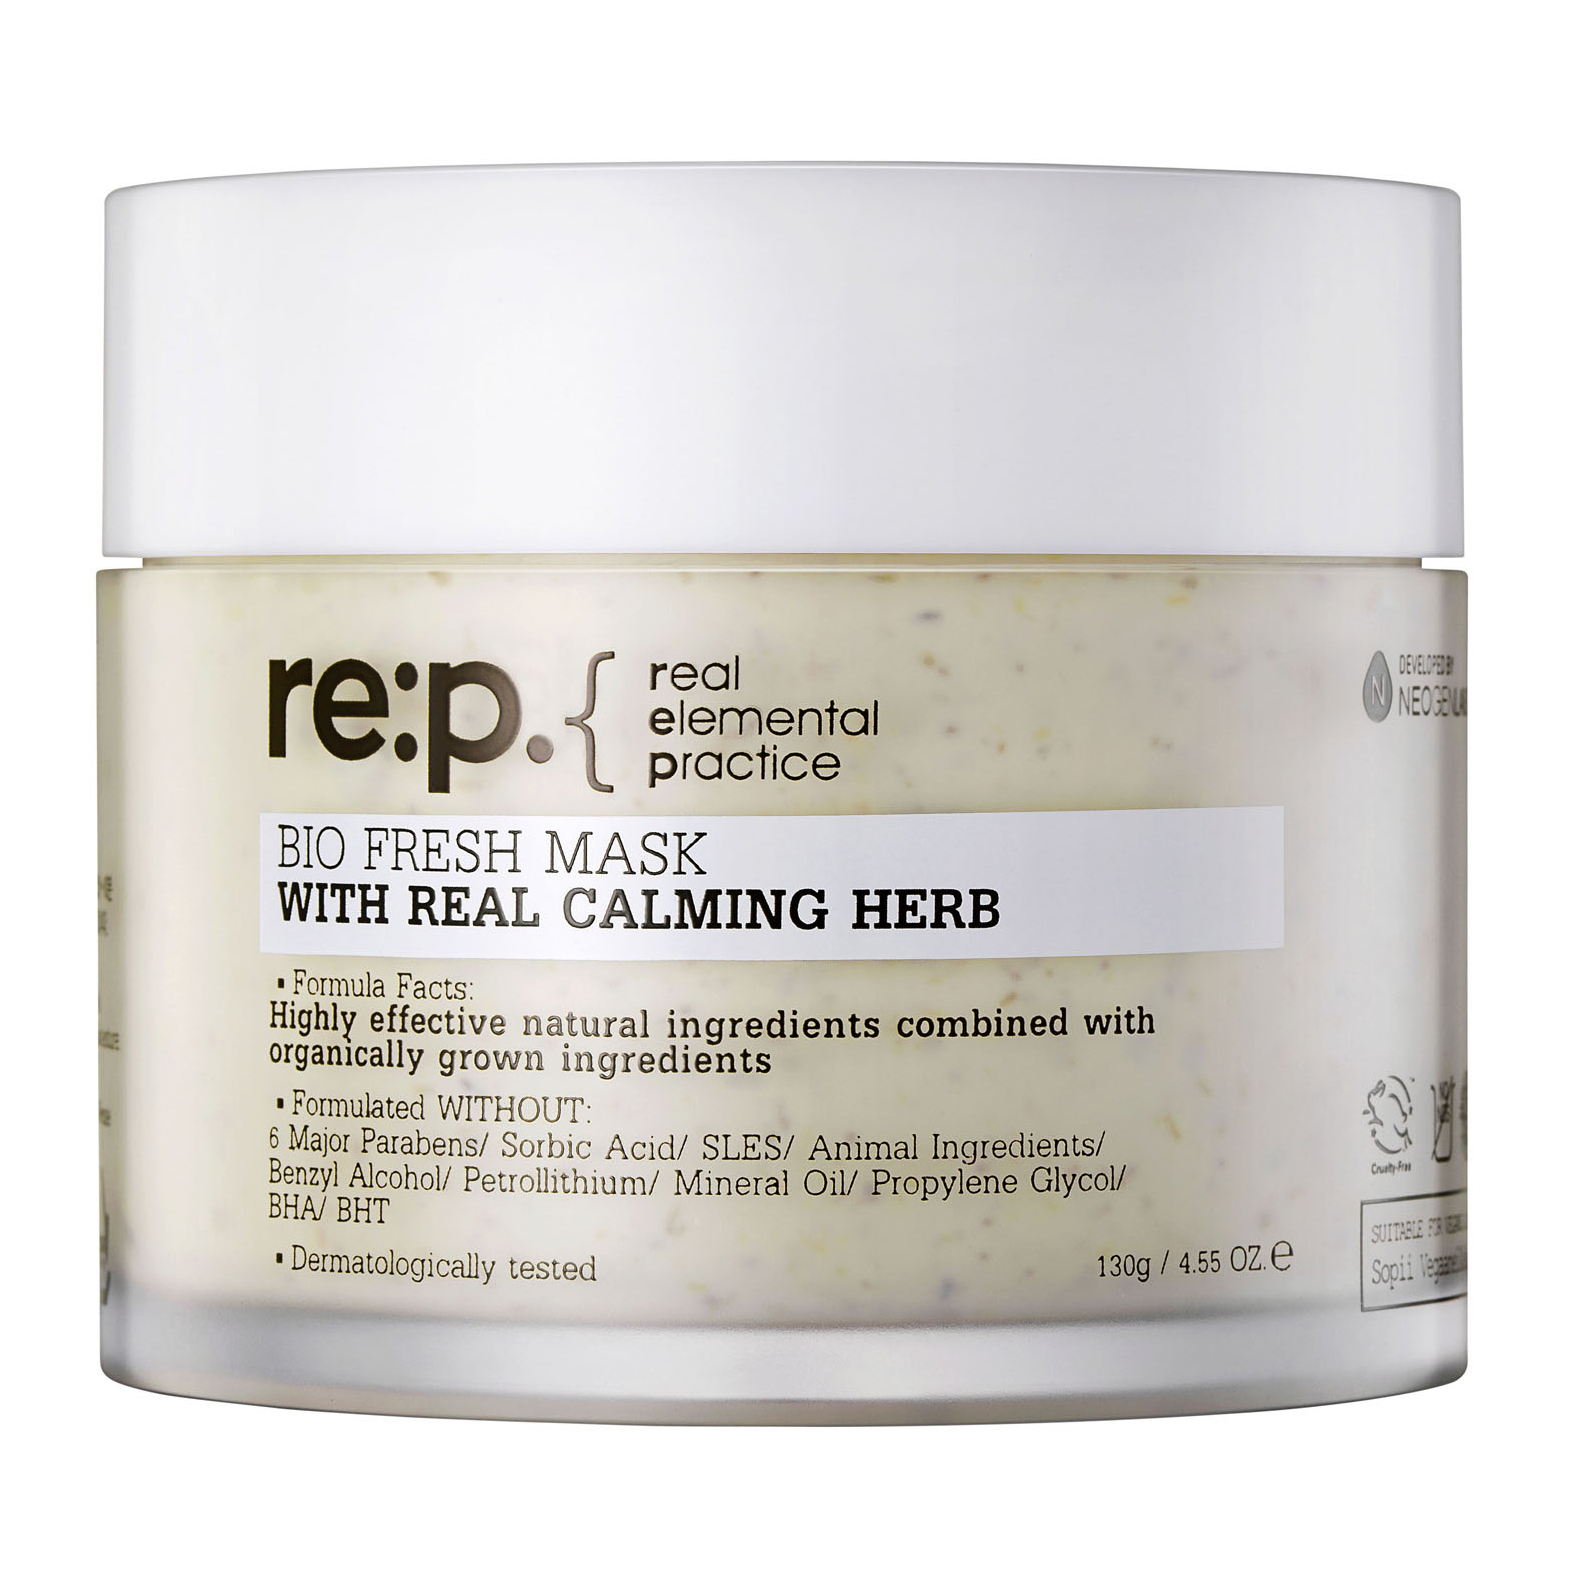 re p bio fresh mask with real calming herbs